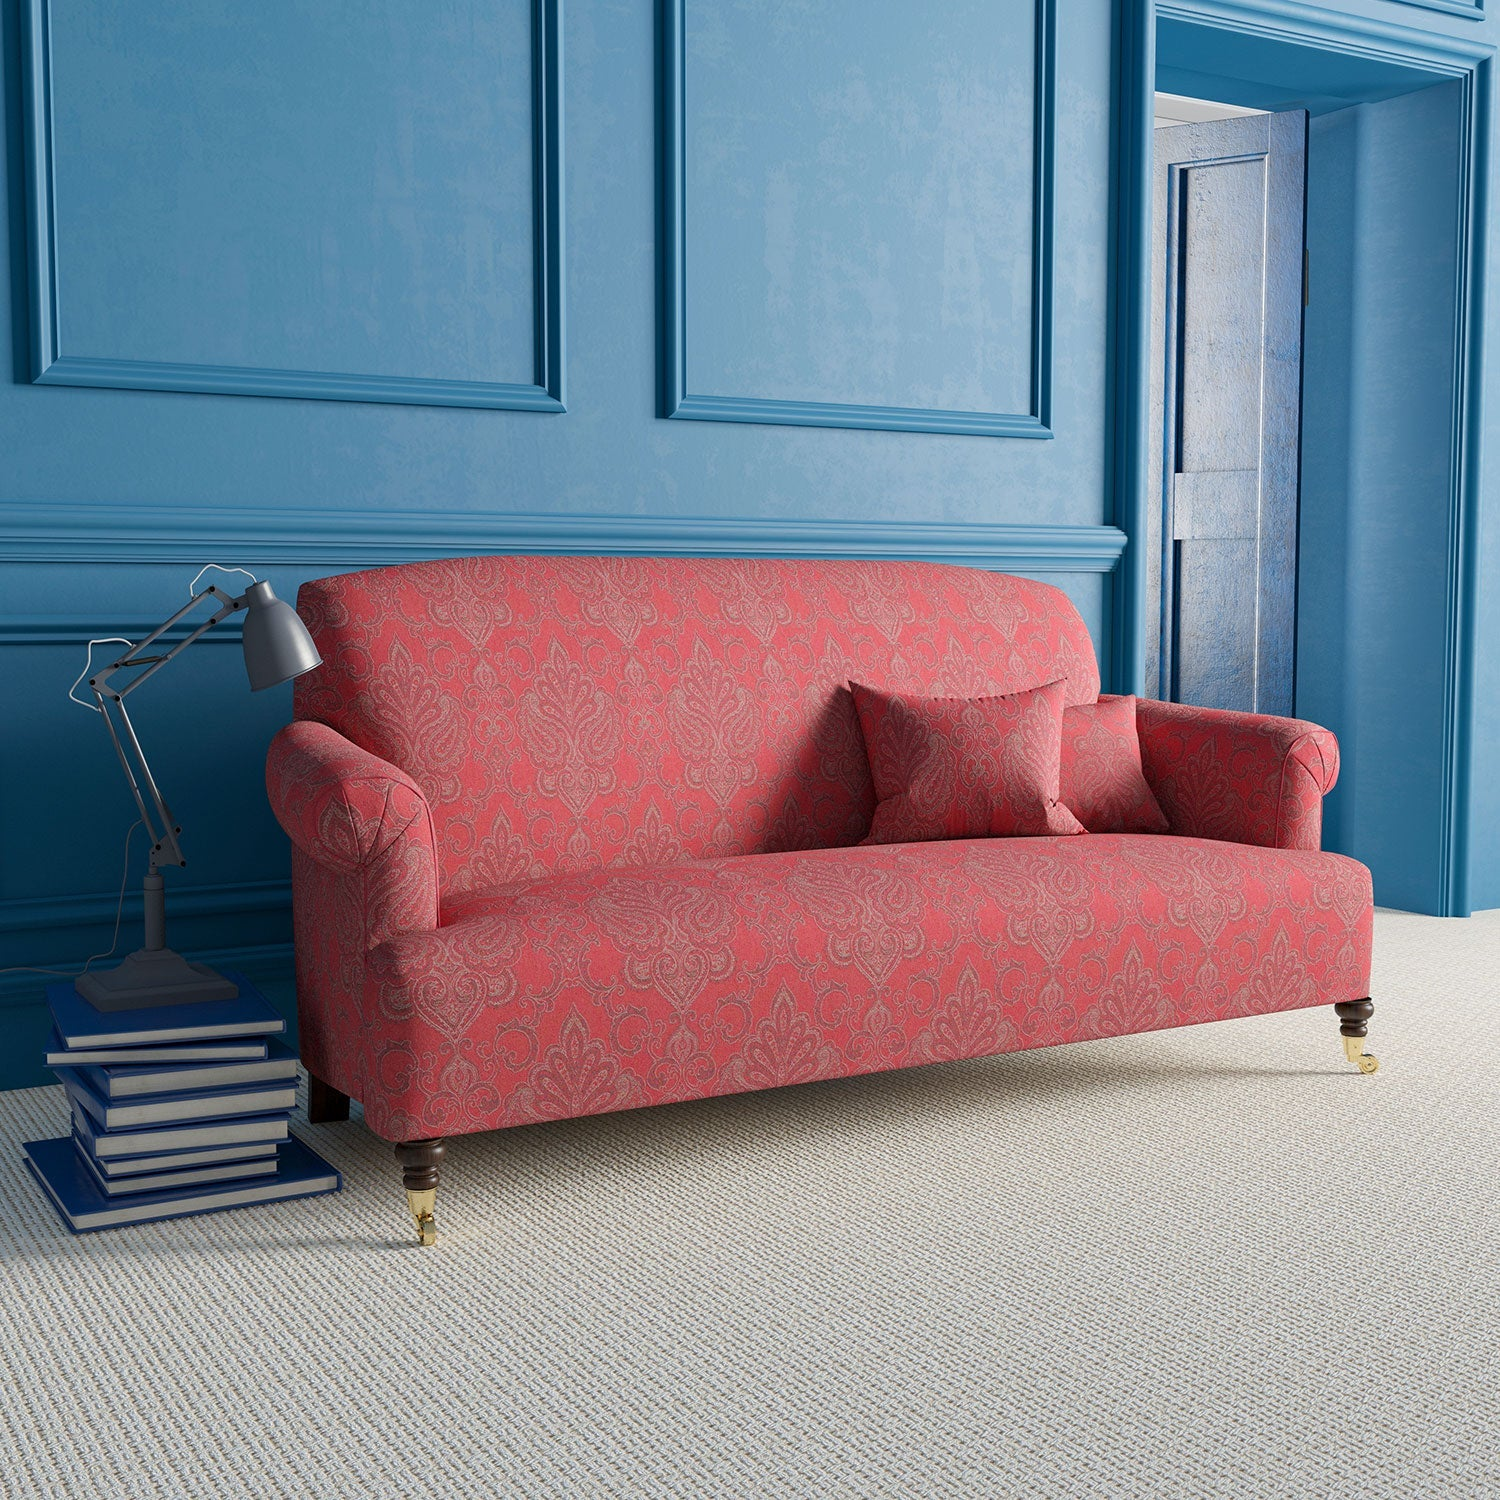 Sofa upholstered in a red fabric with mauve and grey large scale damask print.